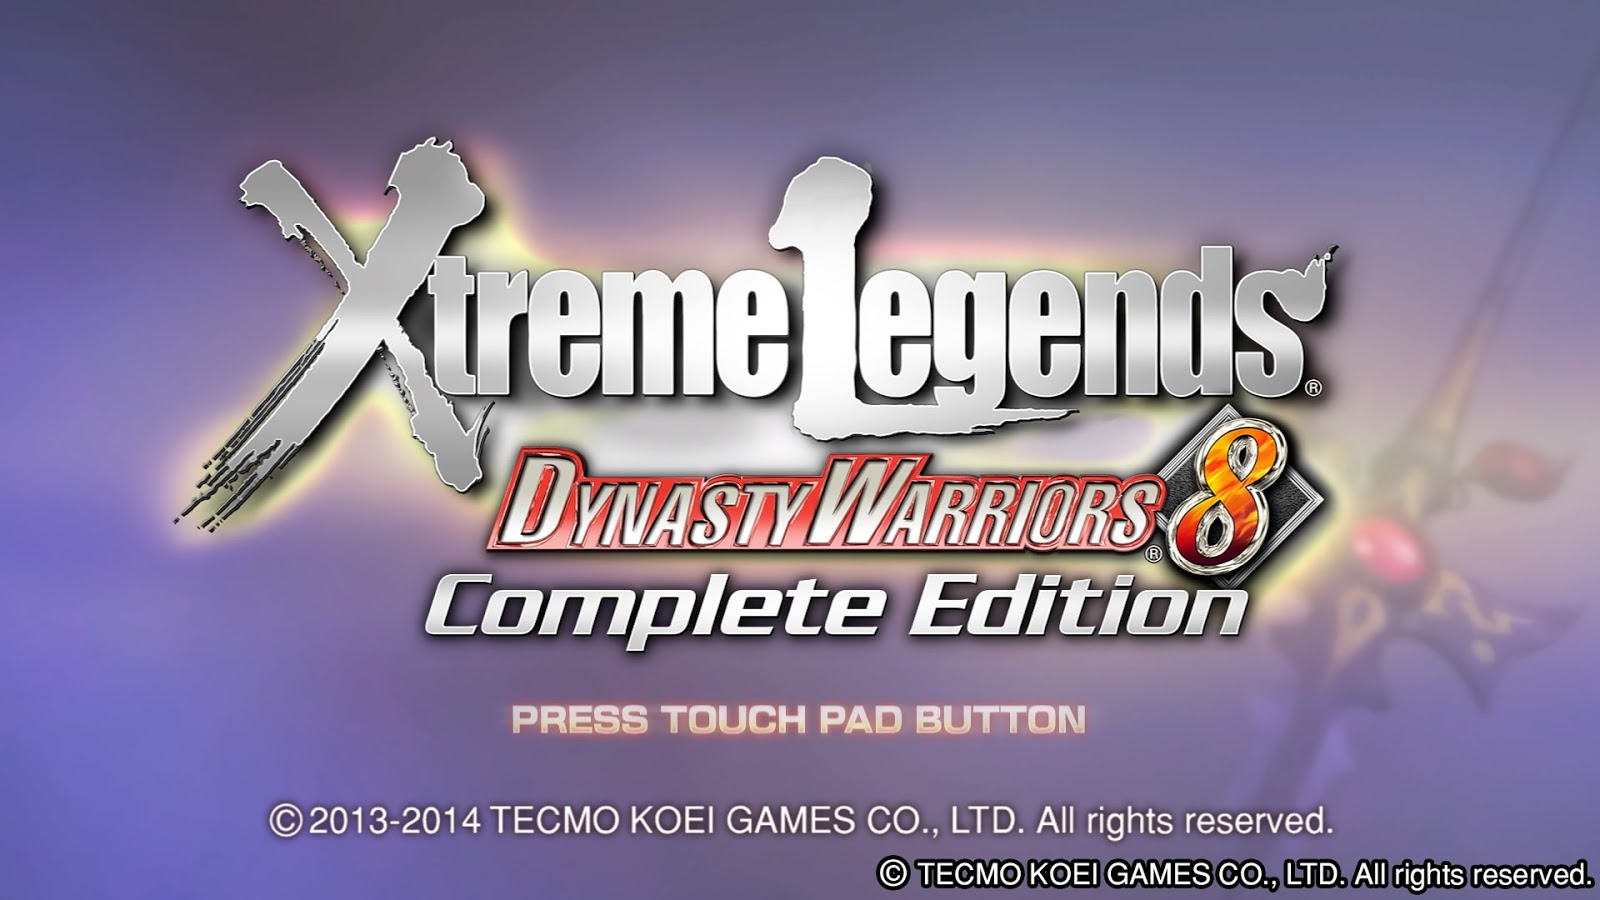 The Hyper Nerd Dynasty Warriors 8 Xtreme Legends Complete Edition Game Ps4 At Its Heart Is Same As Been For Quite Some Time Mentioned Before Youll Select A Warrior